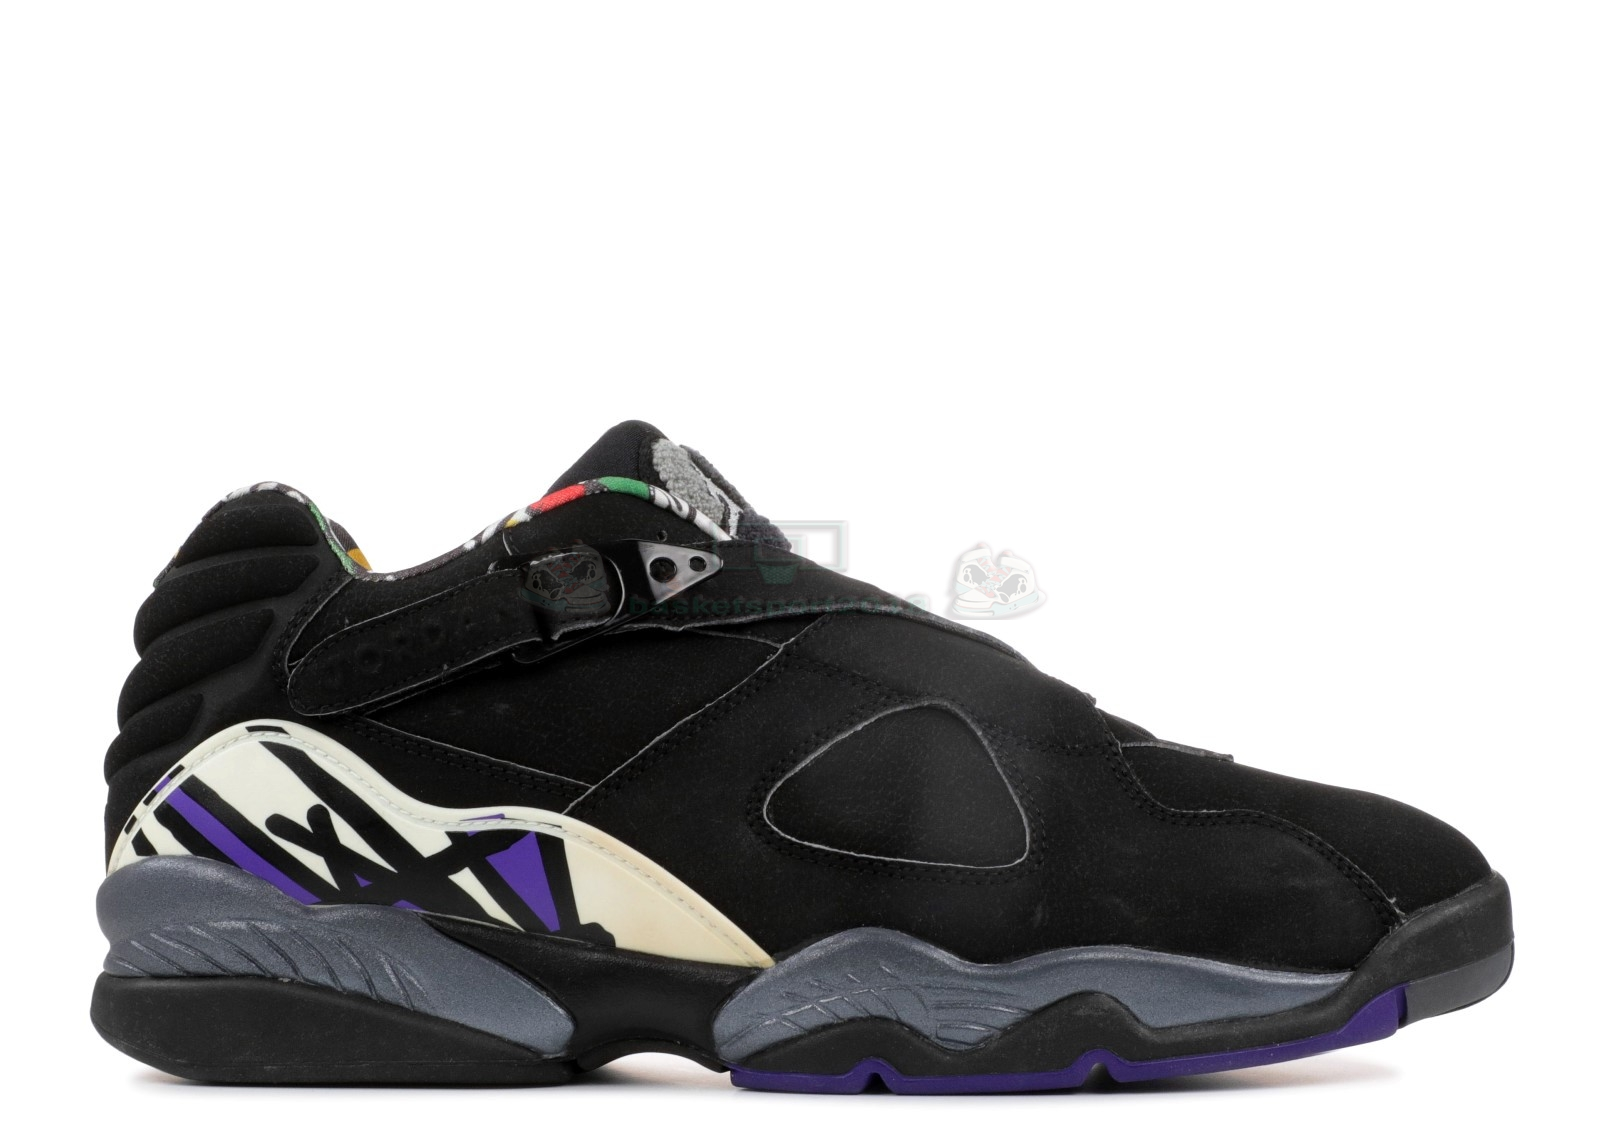 "Acheter Maintenant Pas Cher Homme - Air Jordan 8 Low Pe ""Mike Bibby Kings Away"" Noir Pourpre (jbm155-m7)"